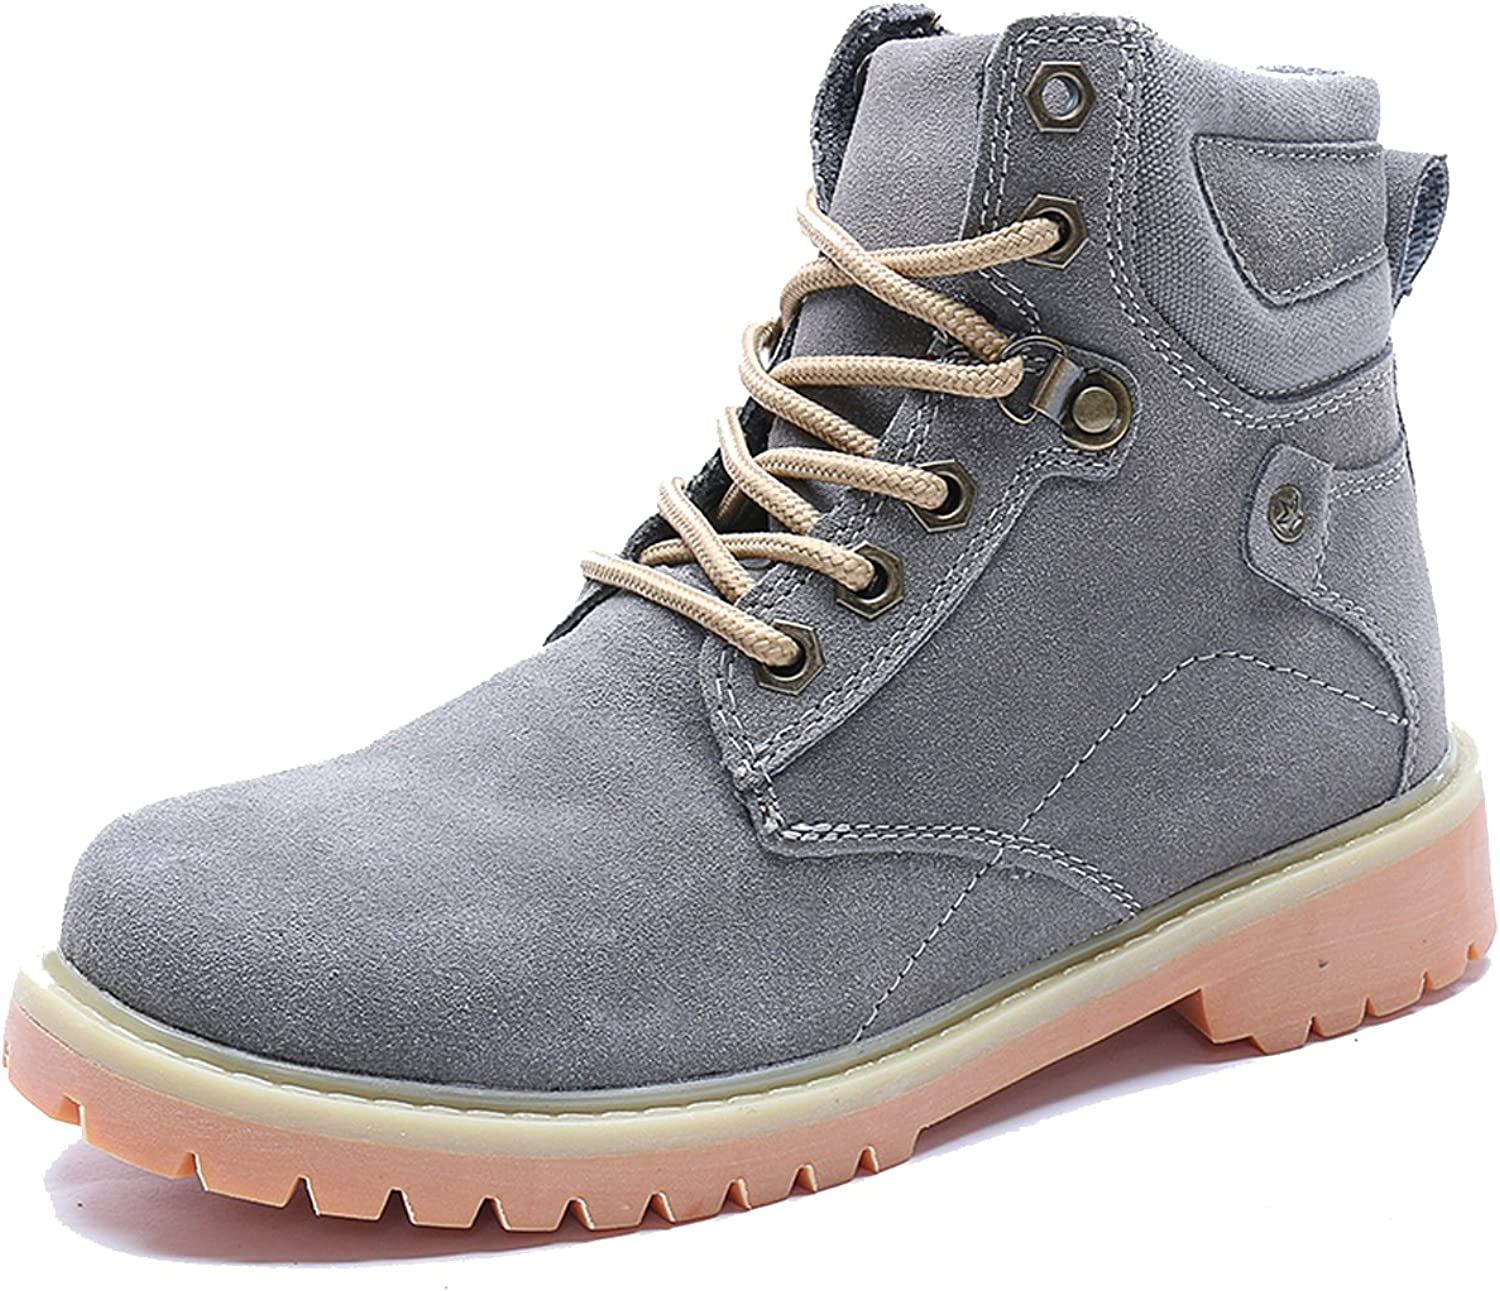 Moonwalker Women's Suede Leather Lace Up Ankle Boot